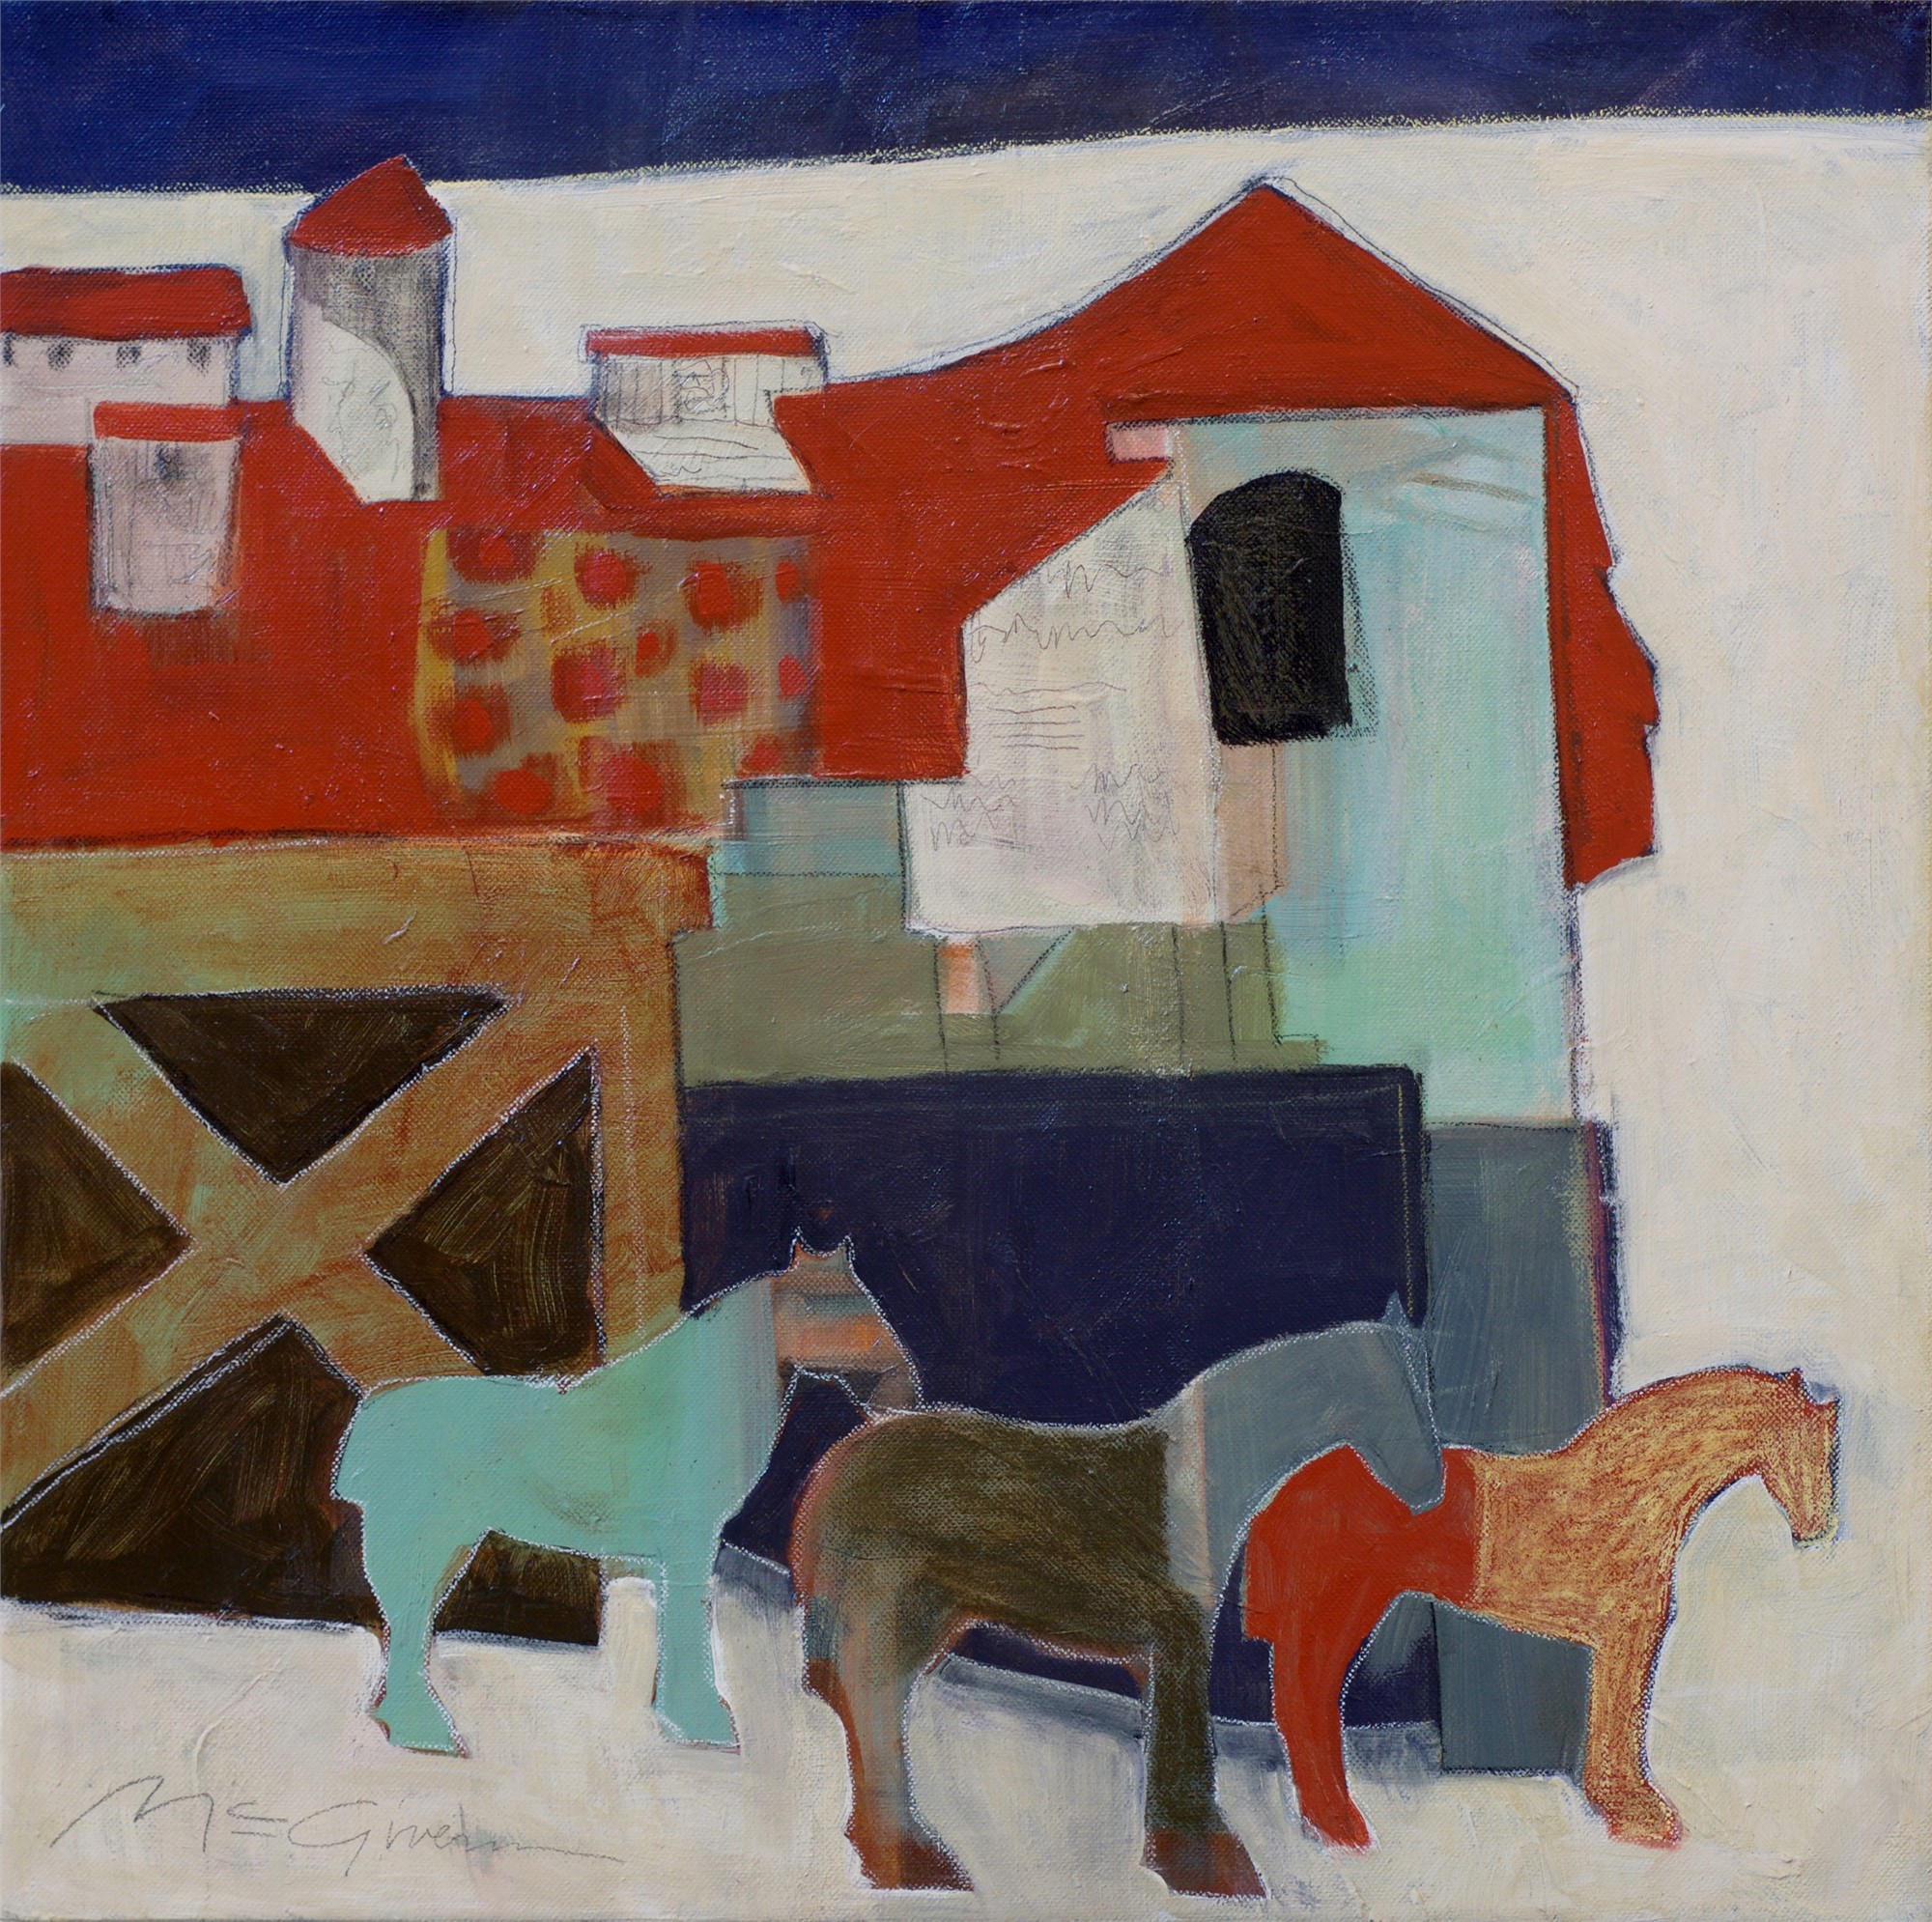 3 Horses by Peggy McGivern